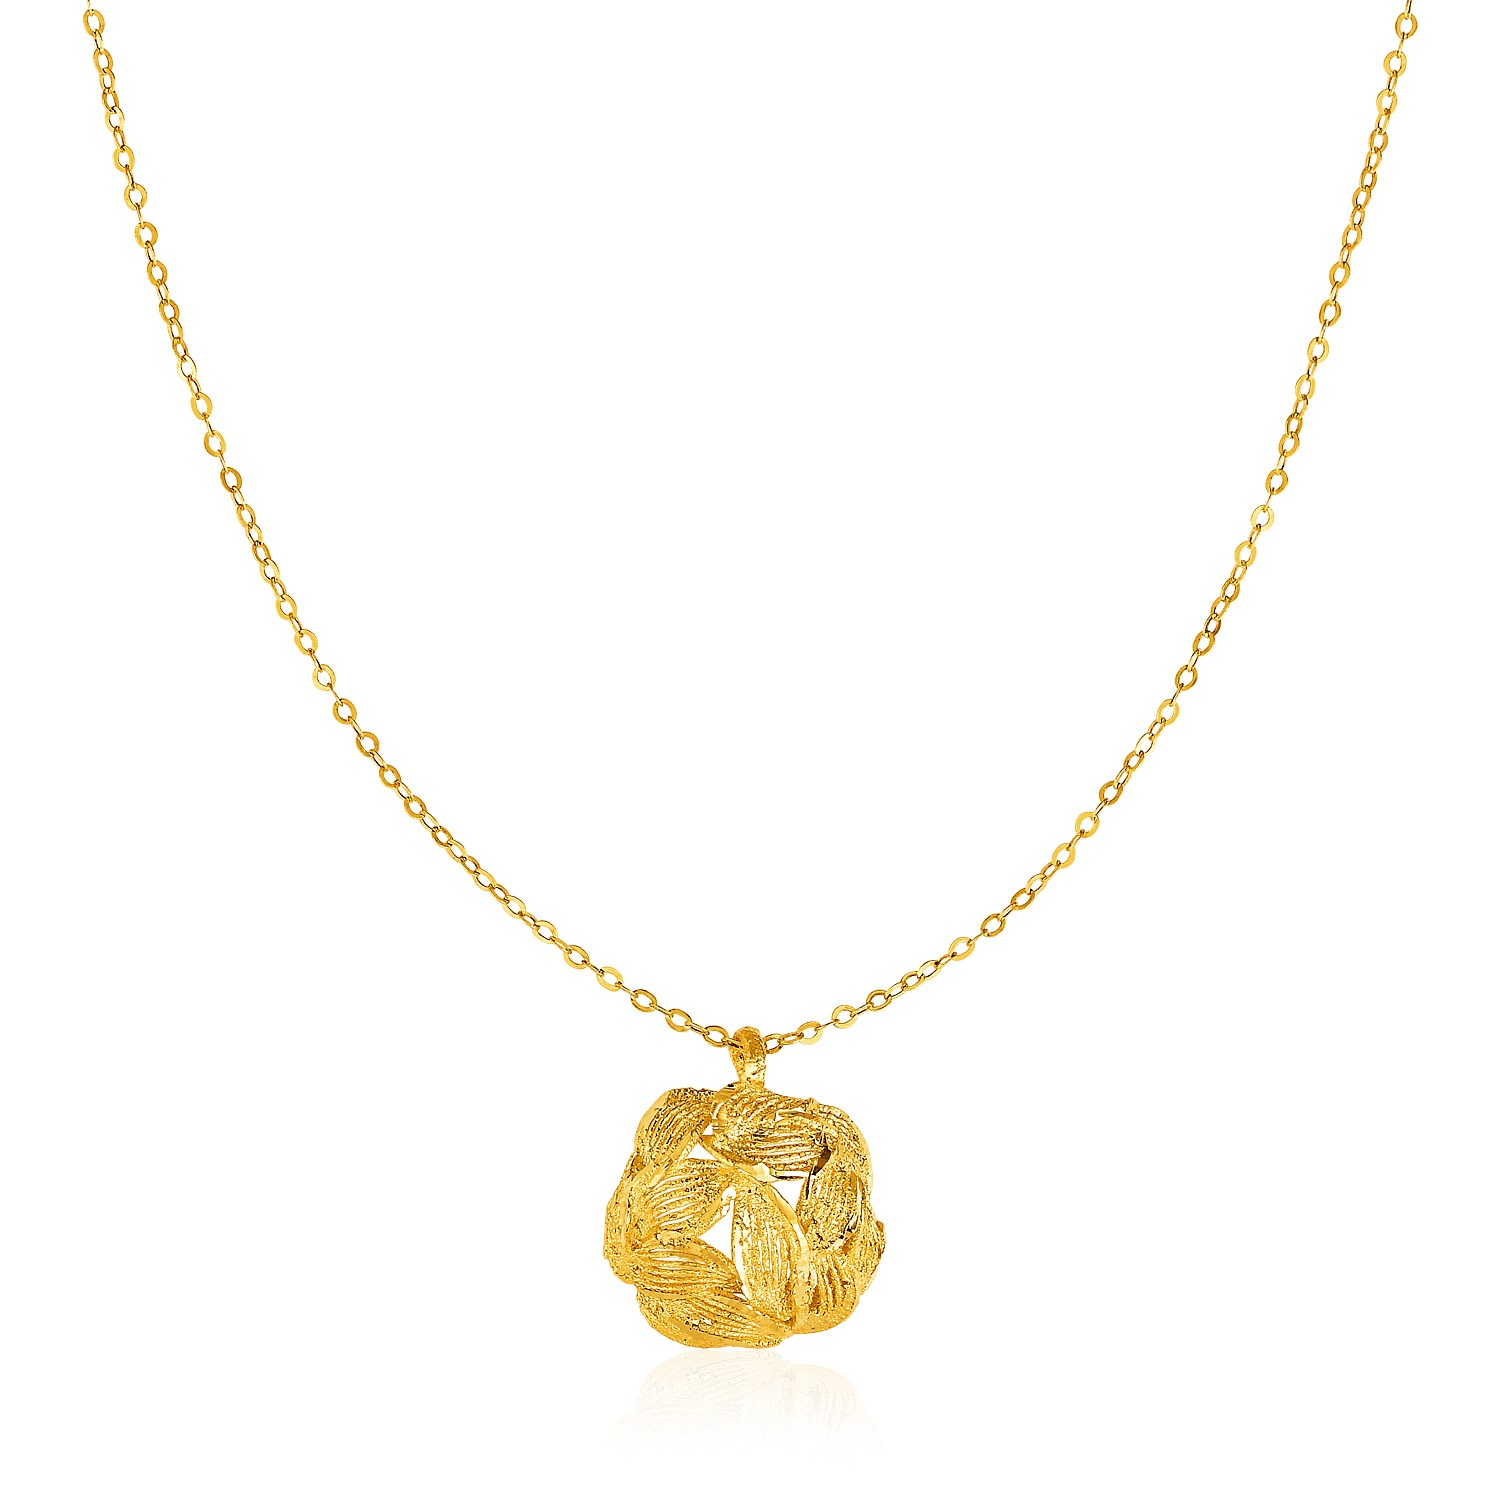 You rock gems showcase 14k gold necklace with round diamond cut leaf pattern pendant aloadofball Images